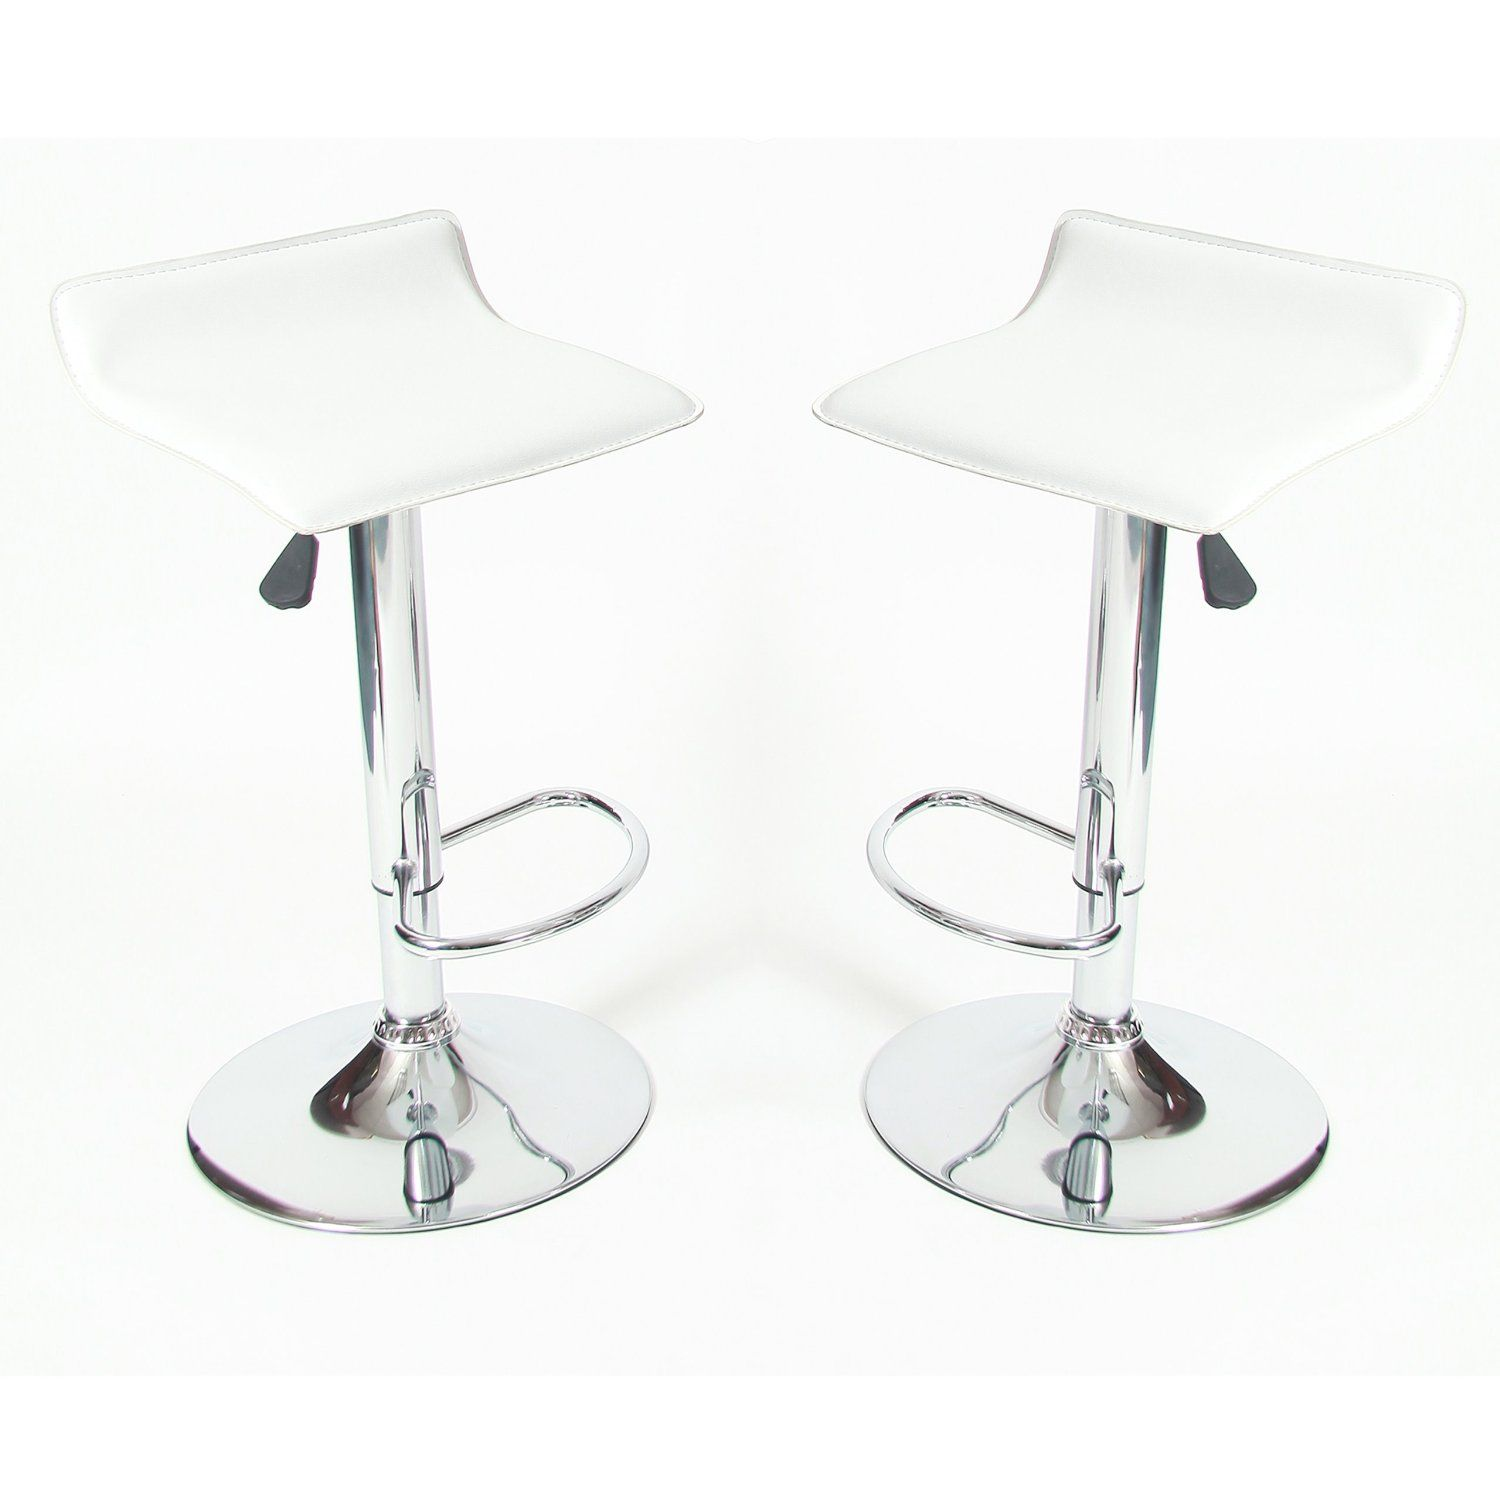 Roundhill Contemporary Chrome Air Lift Adjule Swivel Stools With White Seat